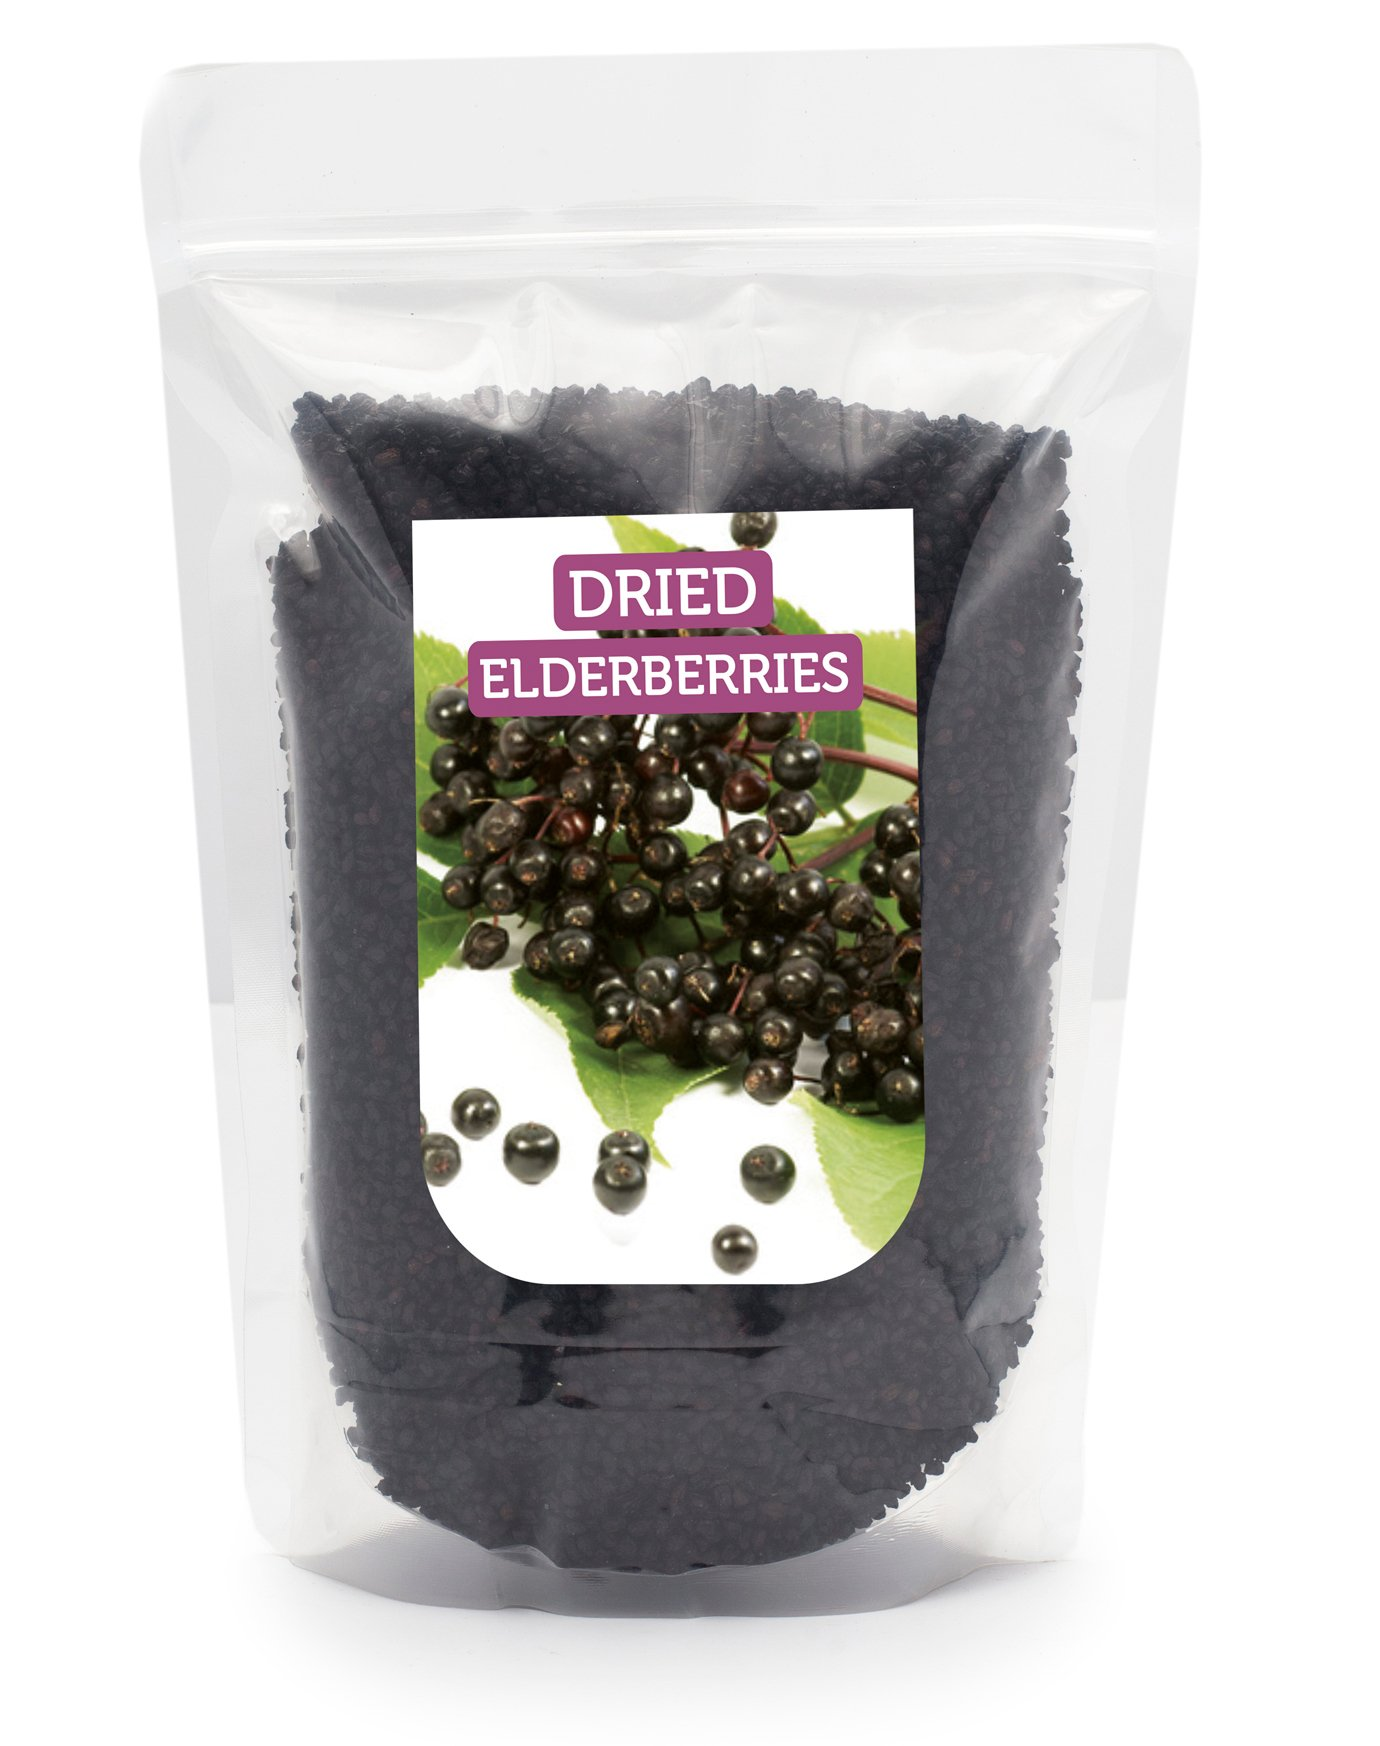 HerbaNordPol Dried ELDERBERRIES from Europe Premium Quality 900GR 2LB by Herbanordpol